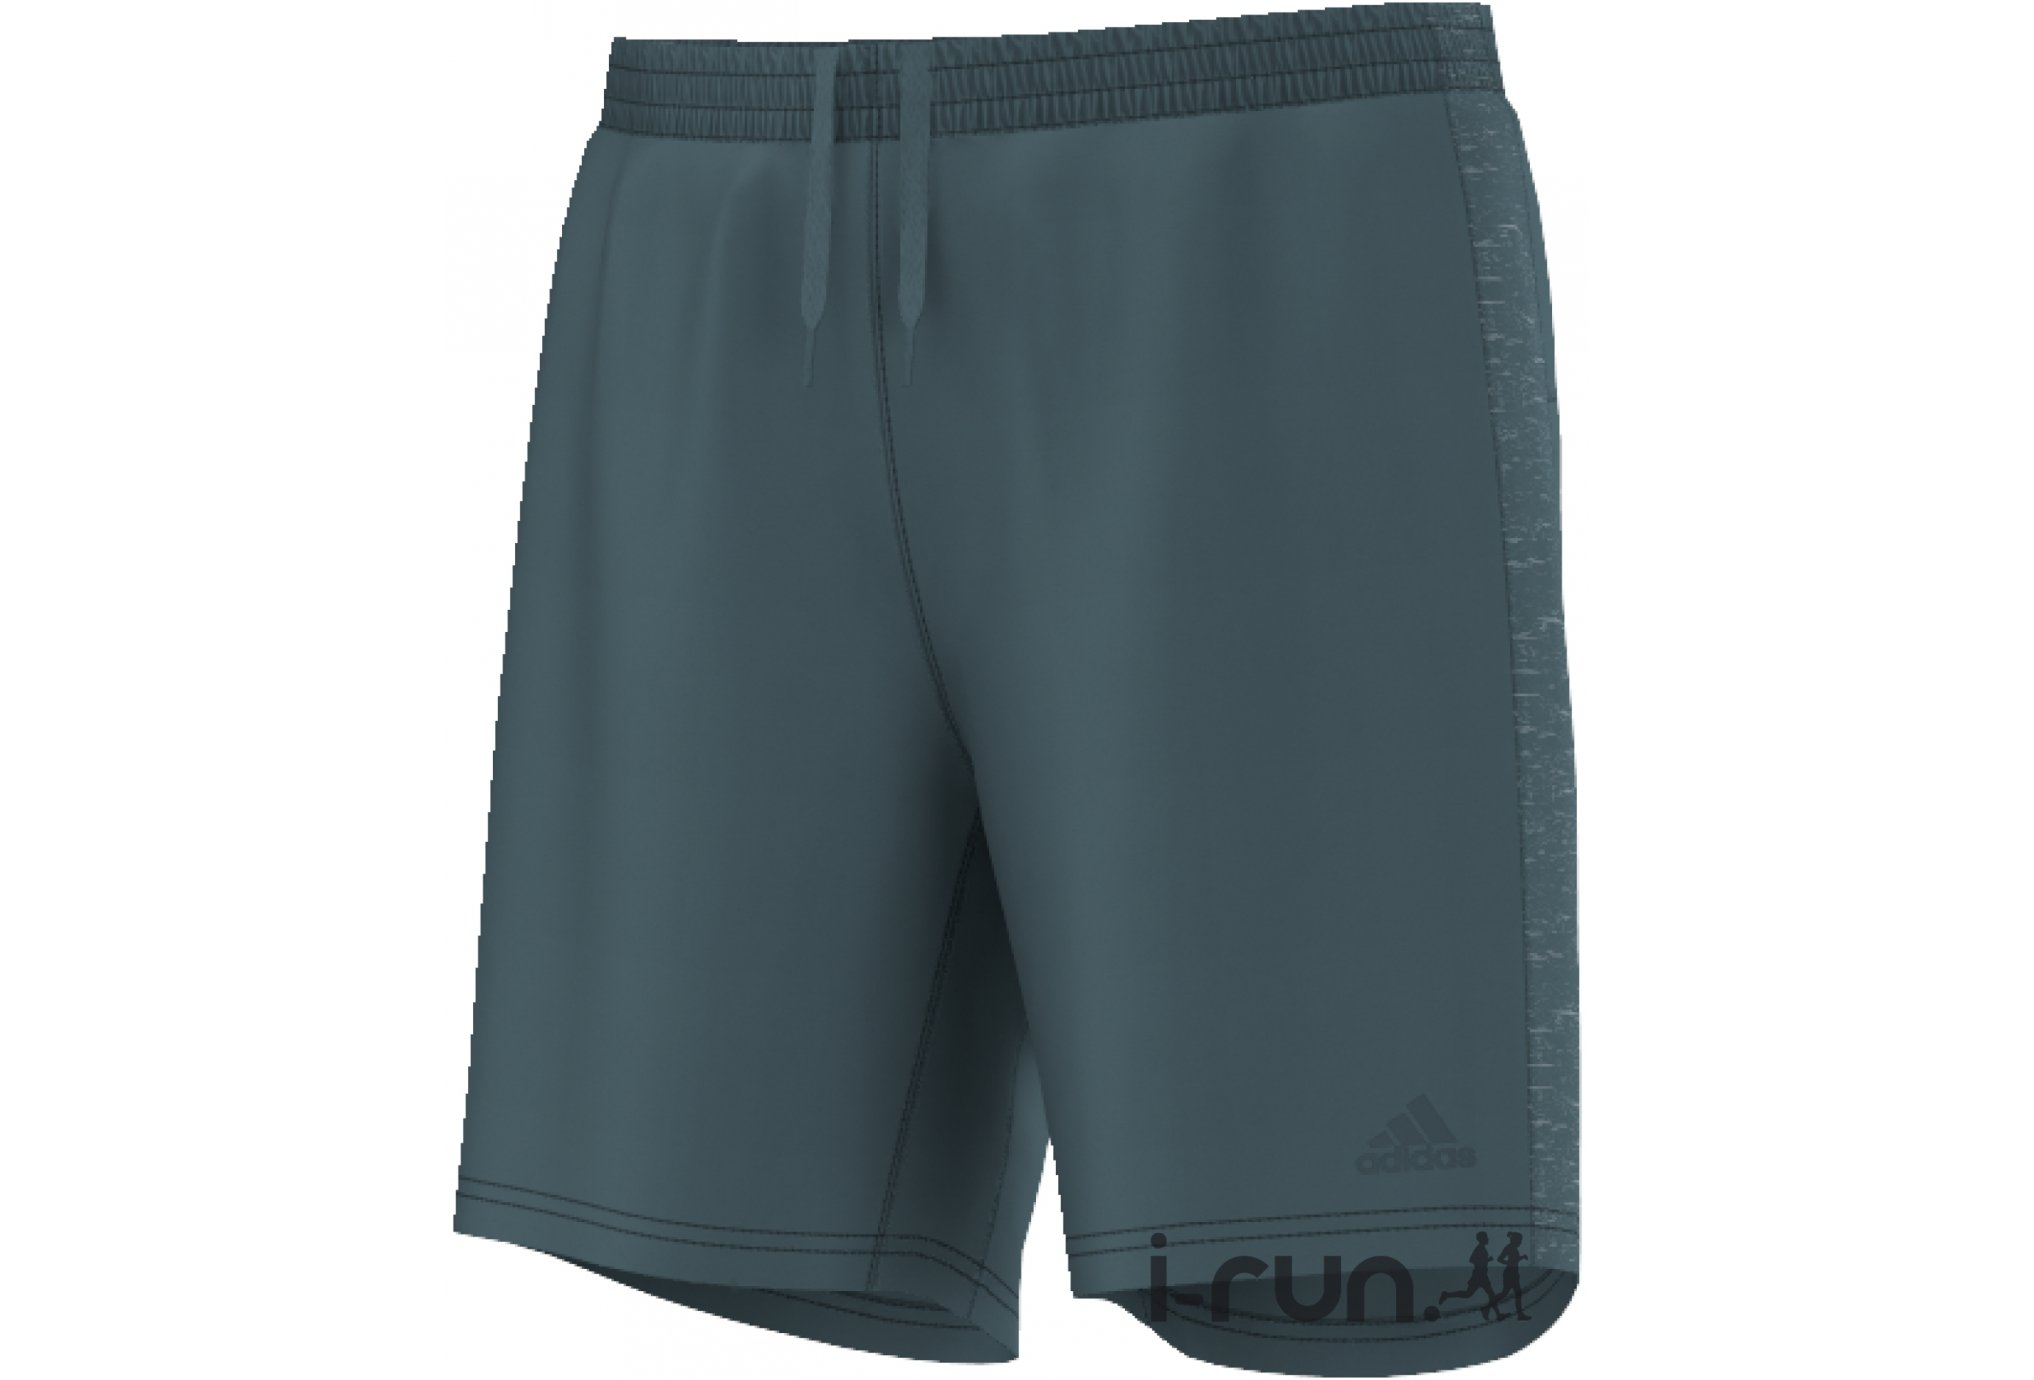 adidas Short Supernova M vêtement running homme